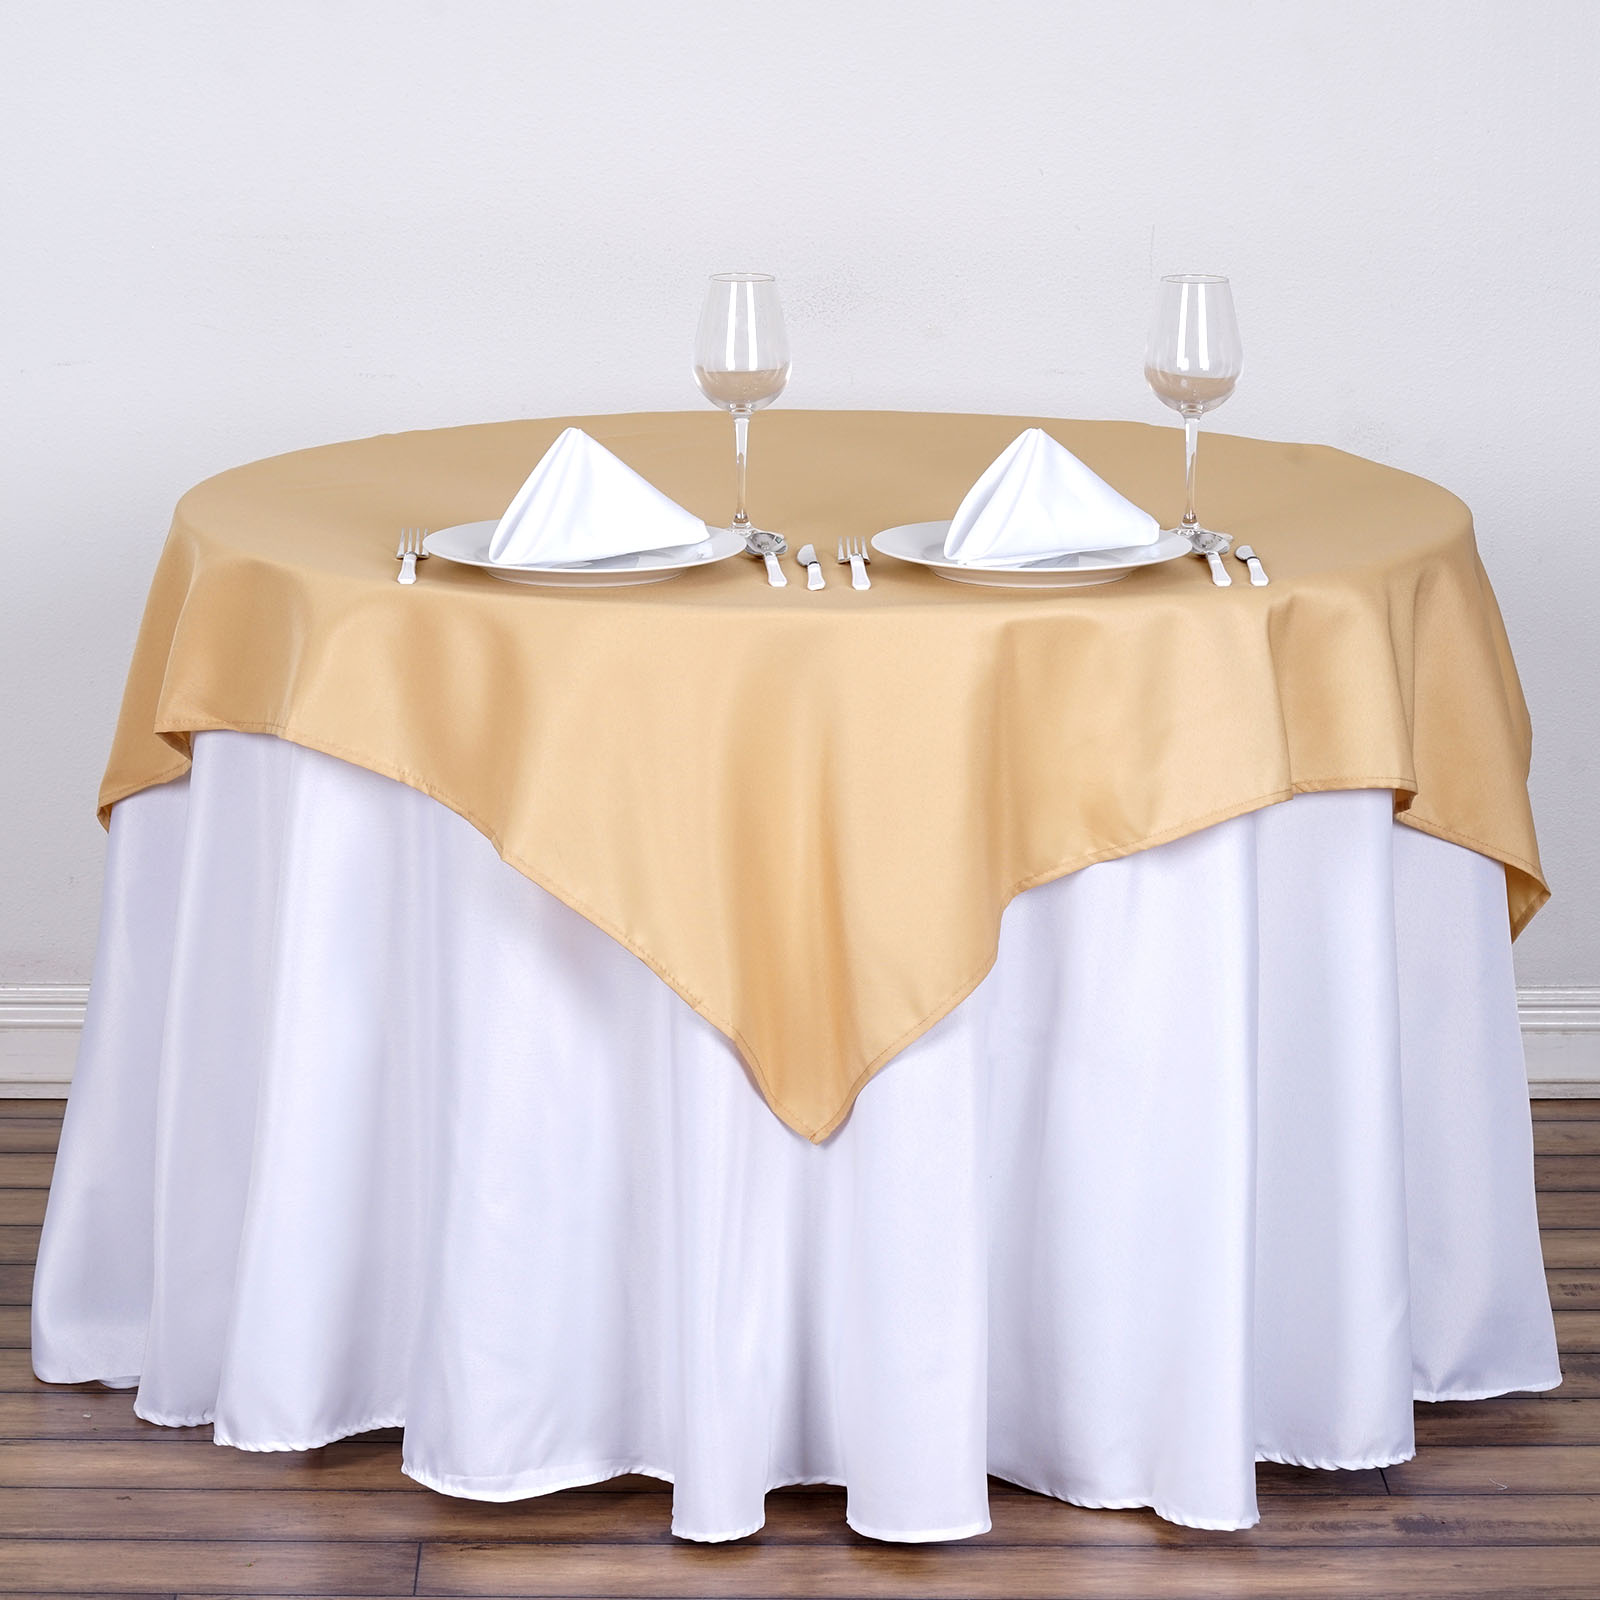 """6 pcs 54/"""" SQUARE POLYESTER TABLECLOTHS Wedding Party Catering Dinner Linens SALE"""